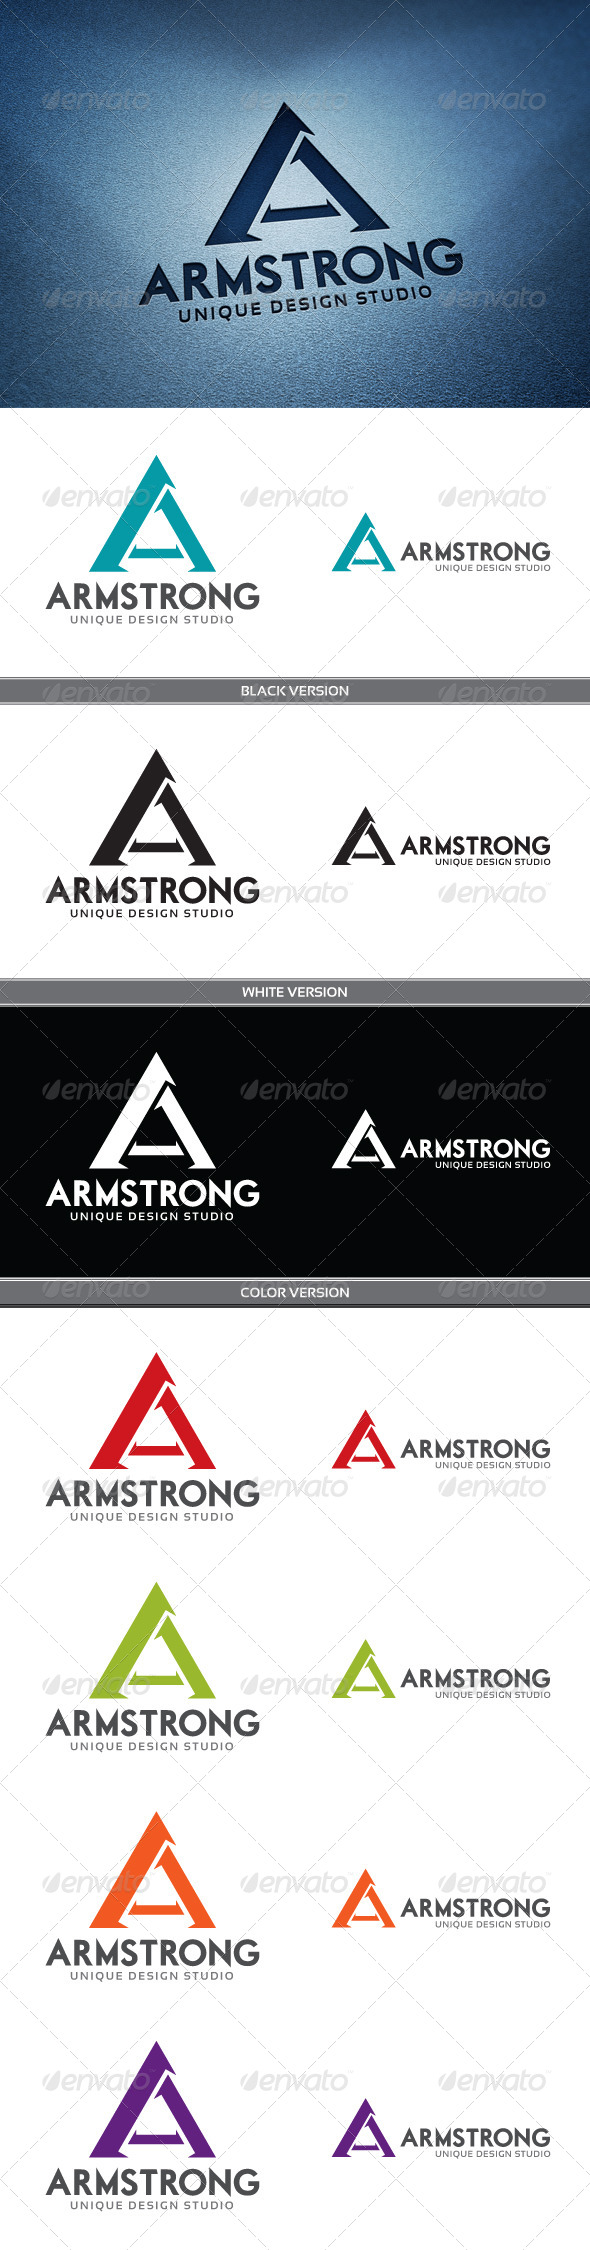 Armstrong - Letters Logo Templates